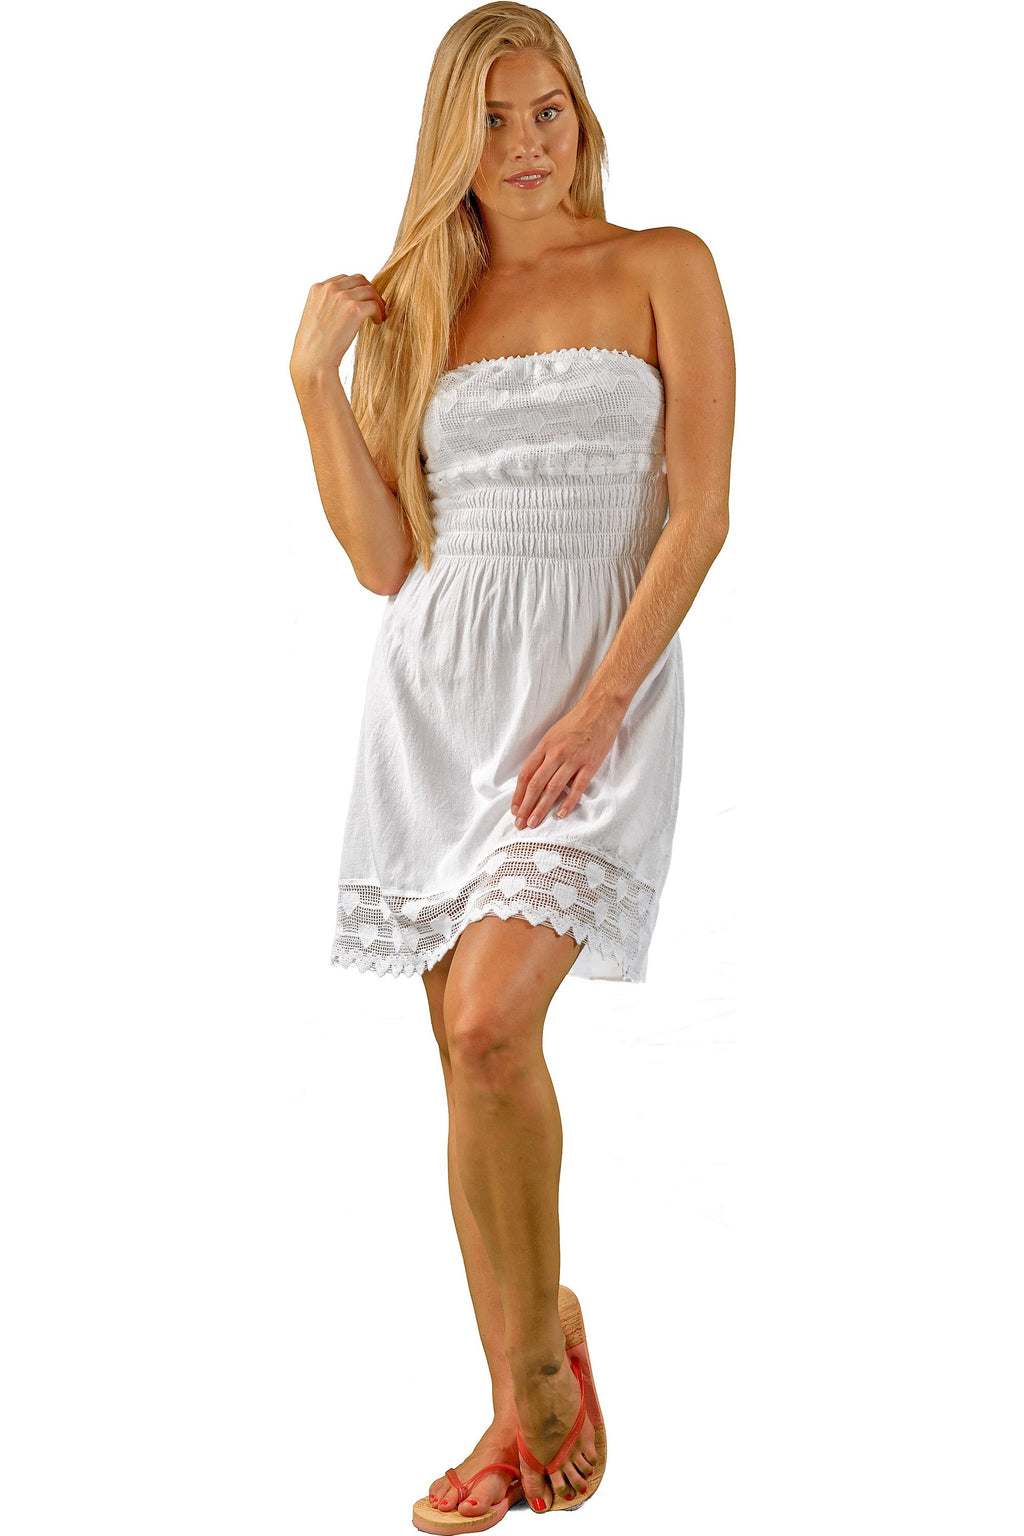 NW1023 - White Cotton Dress - seaspiceresort.com